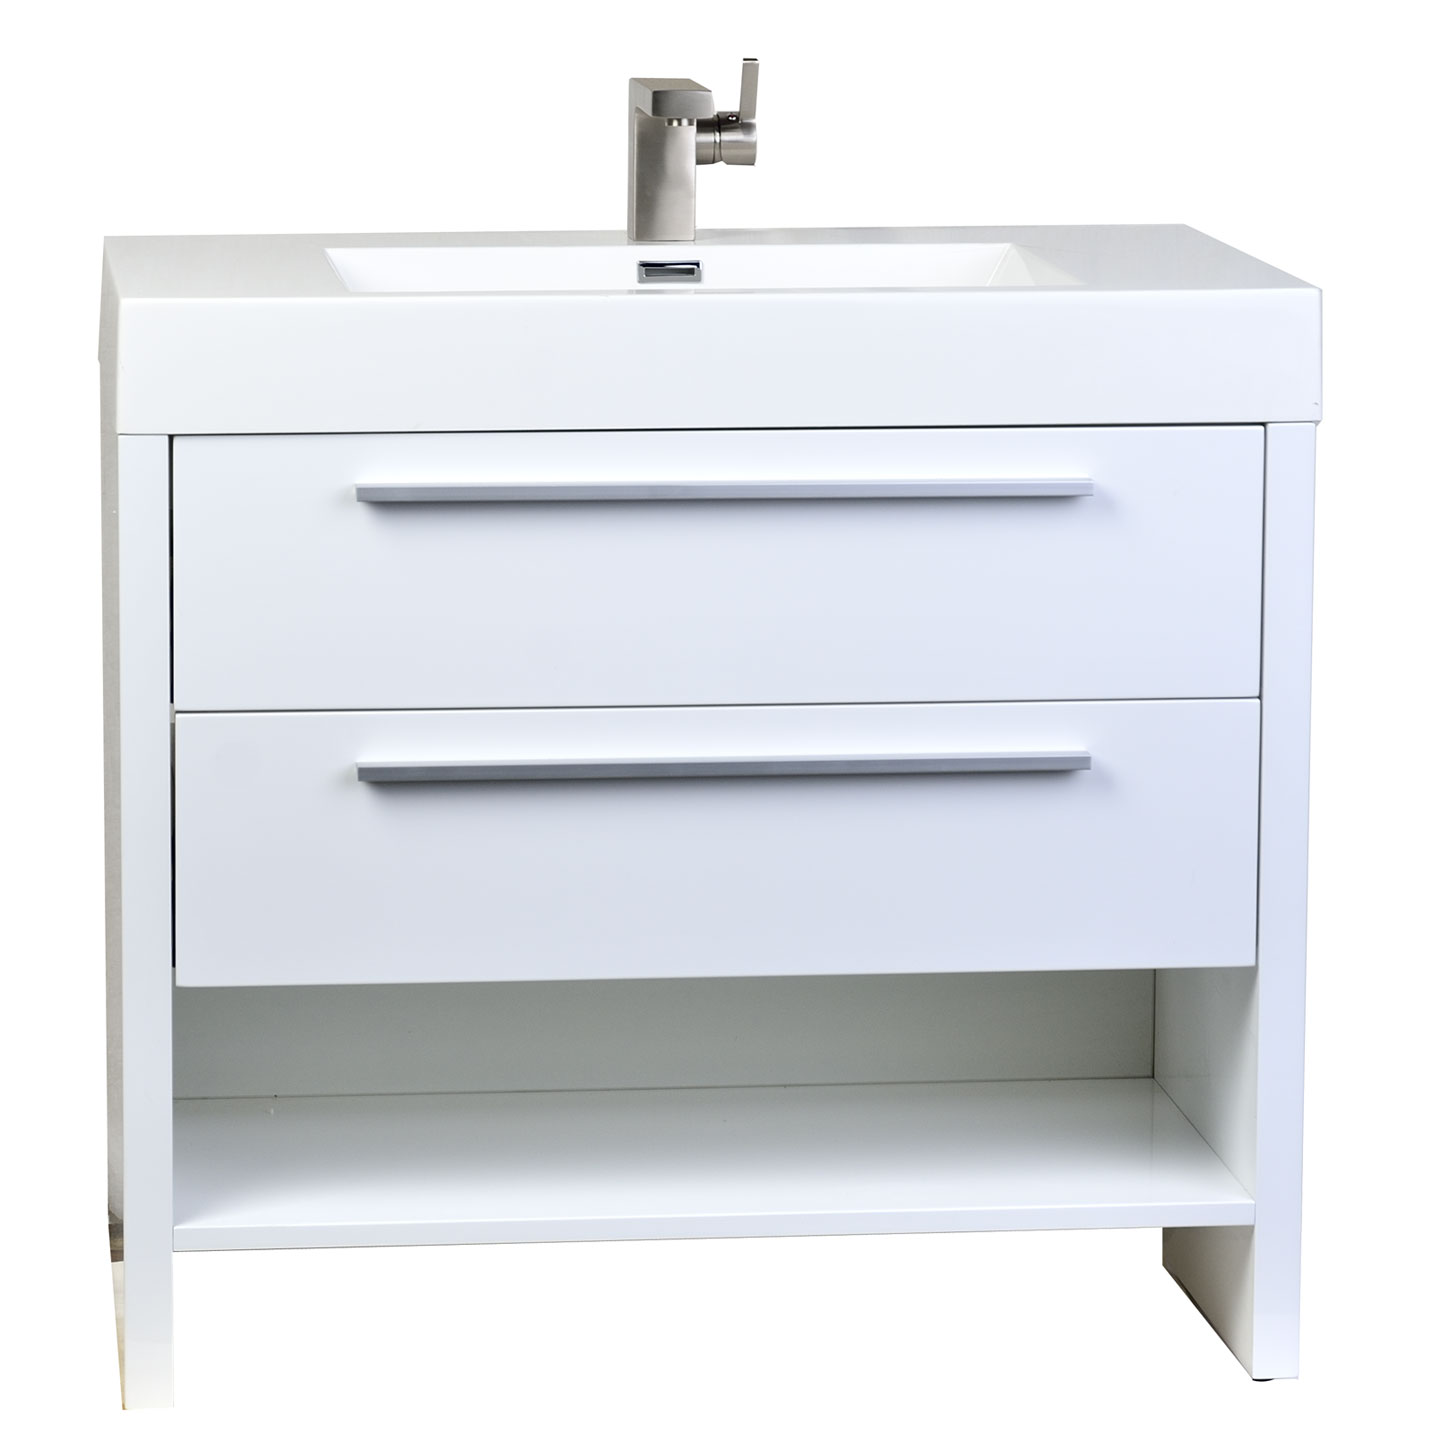 mula 355 modern bathroom vanity high gloss white rs l900 hgw